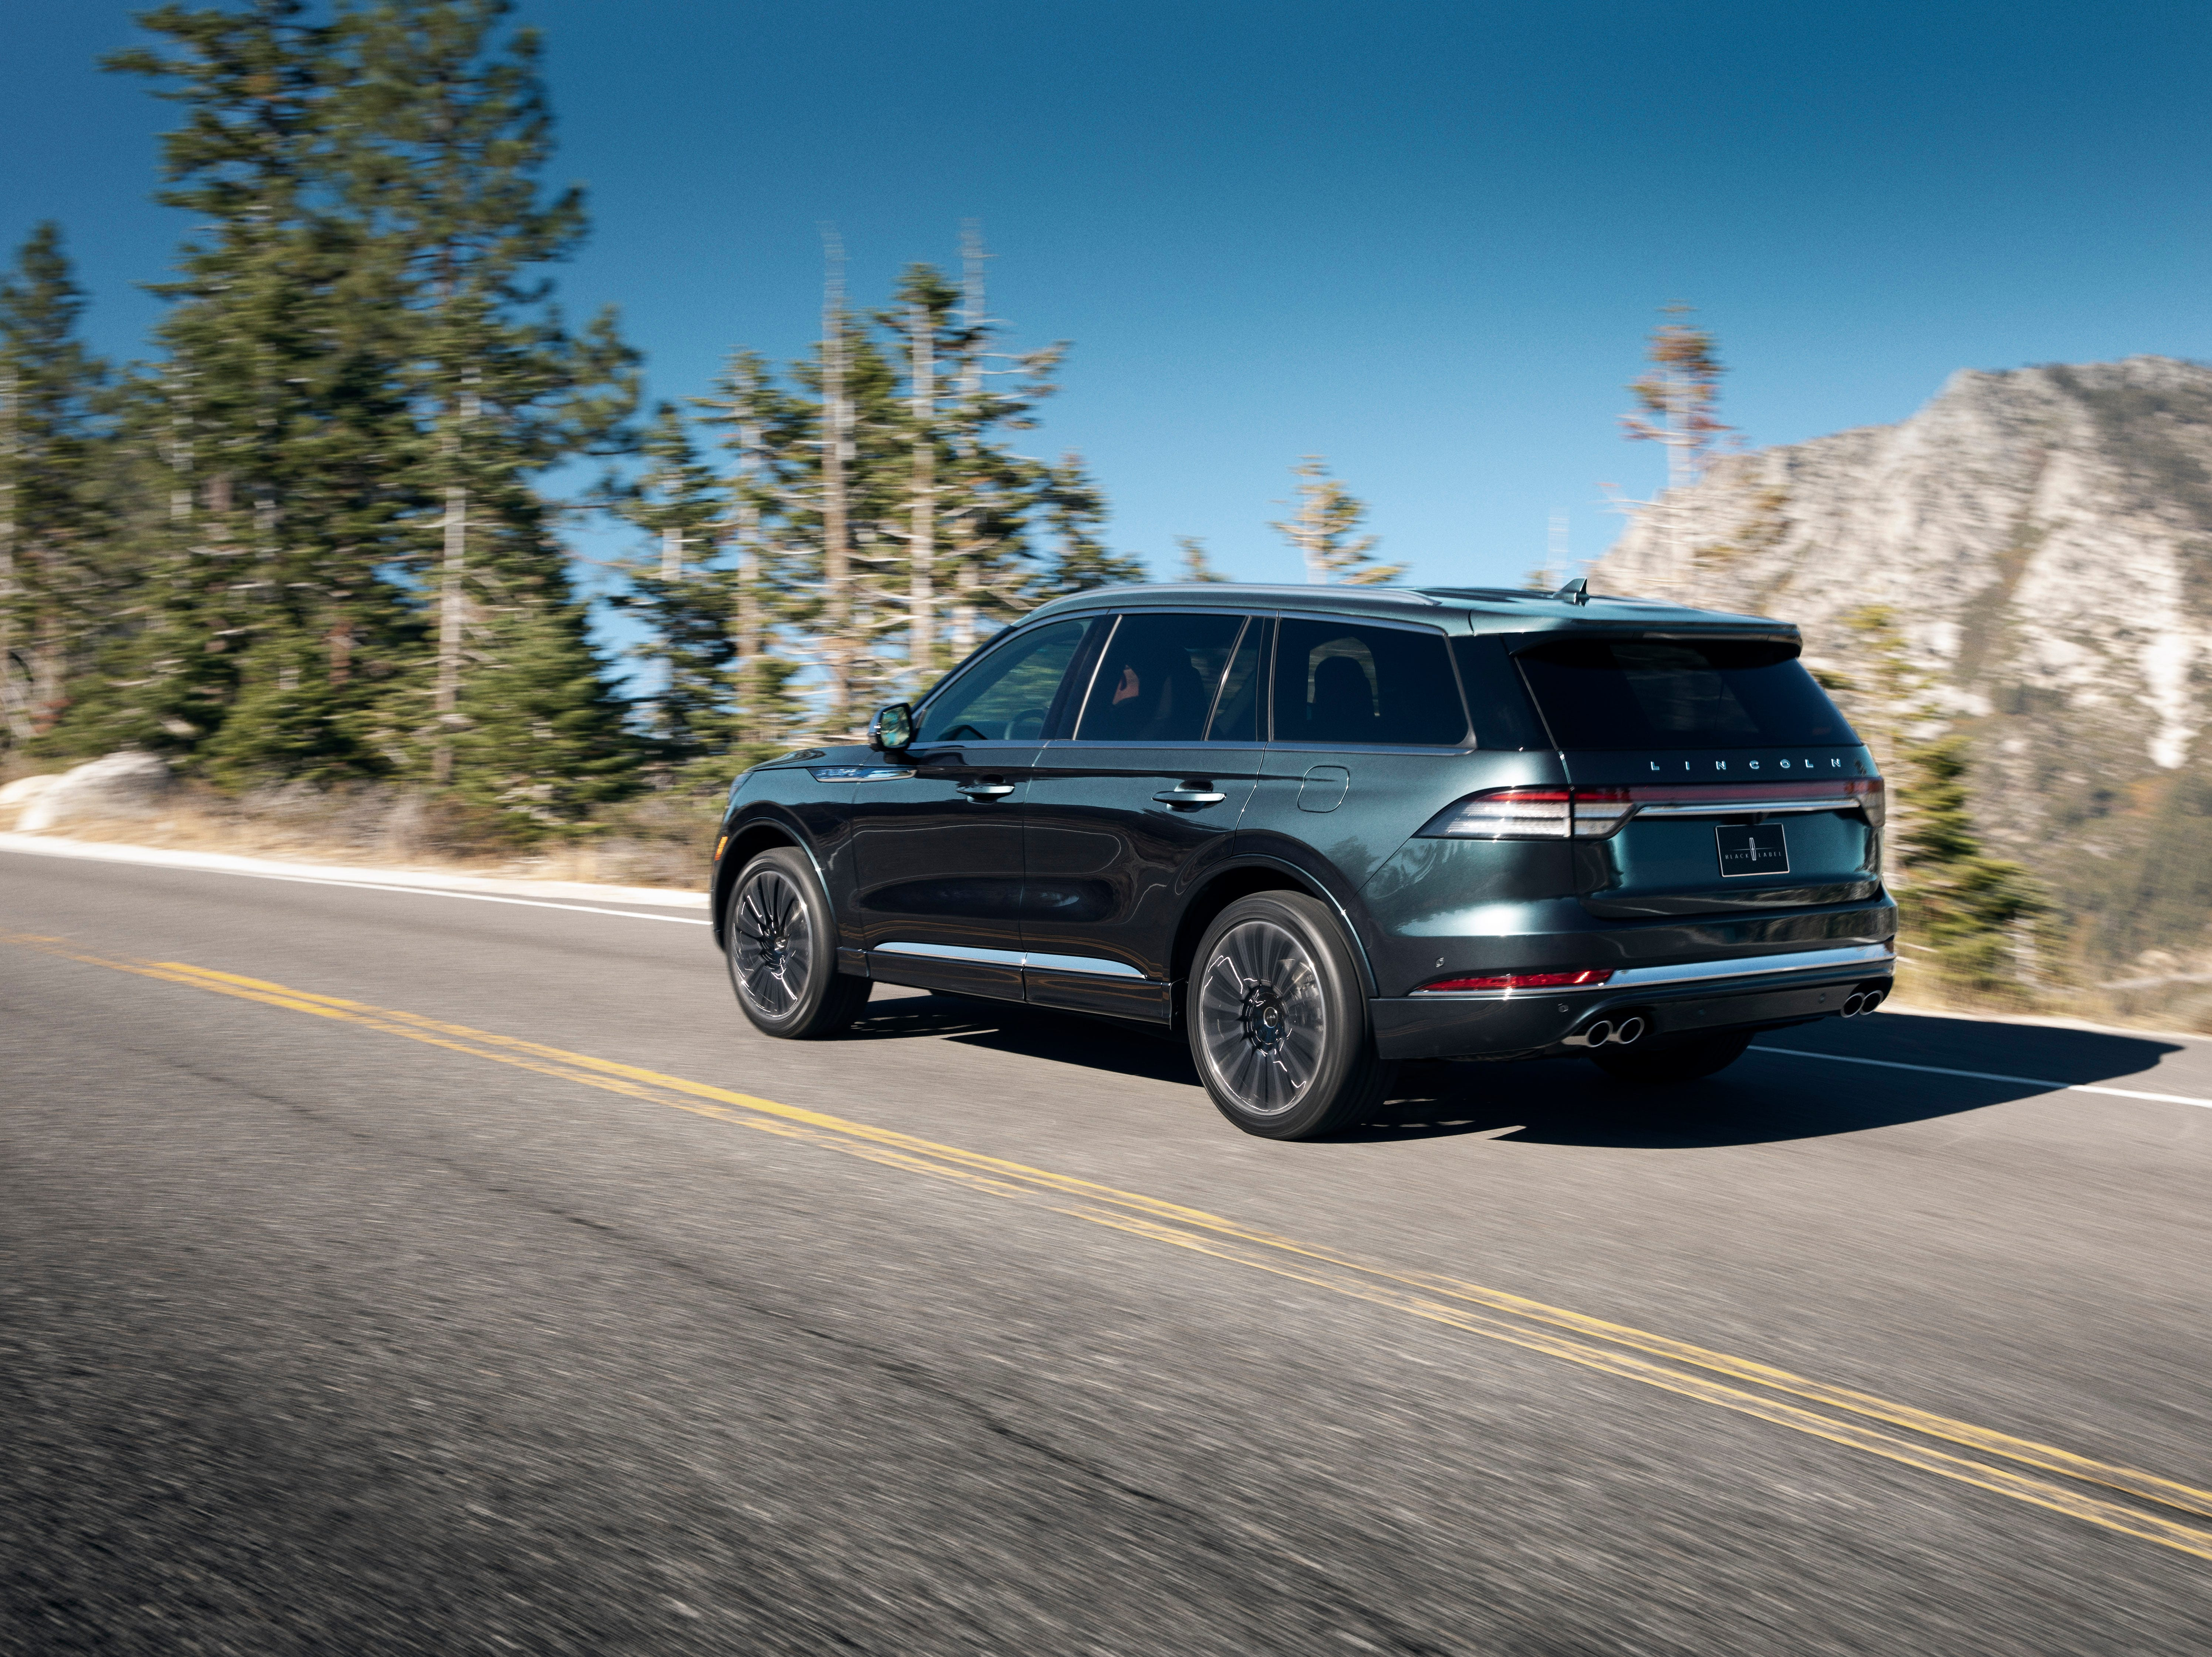 The all-new 2020 Lincoln Aviator boasts advanced technologies that let the luxury SUV kneel to greet you, scan the road ahead for uneven pavement, and allow you to drive away using your smartphone instead of a key.